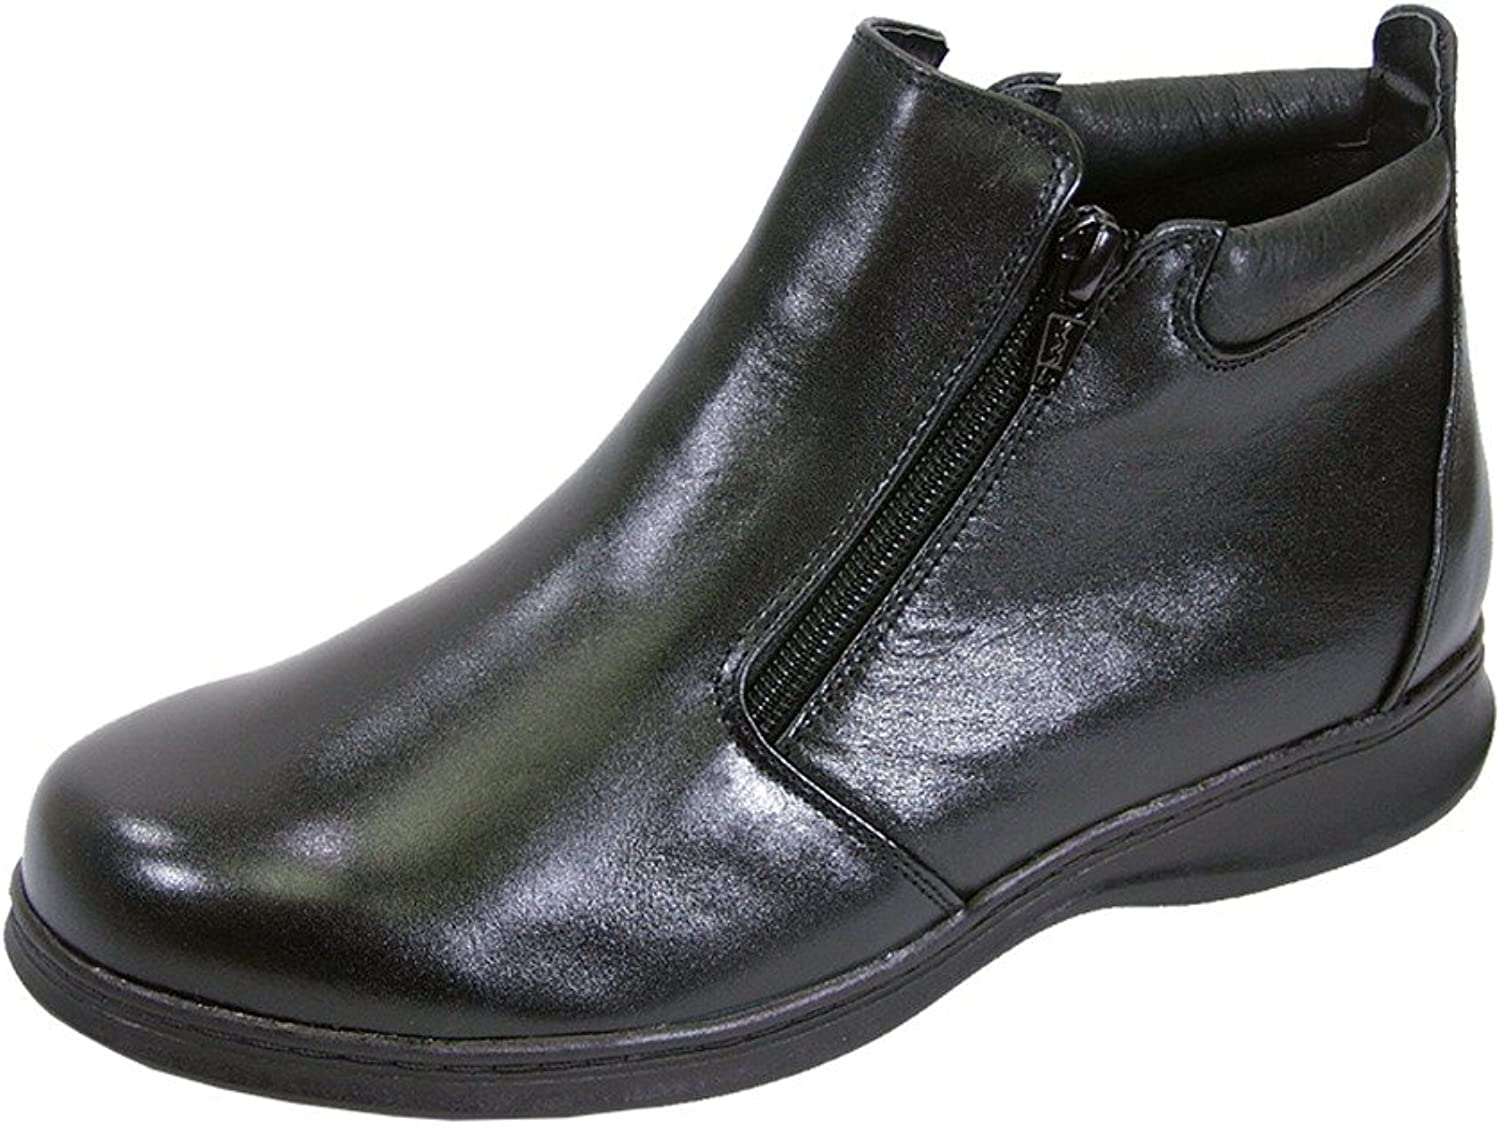 Peerage FIC Juliet Women Wide Width Leather Casual Ankle Boots (Size & Measurement Guides Available)